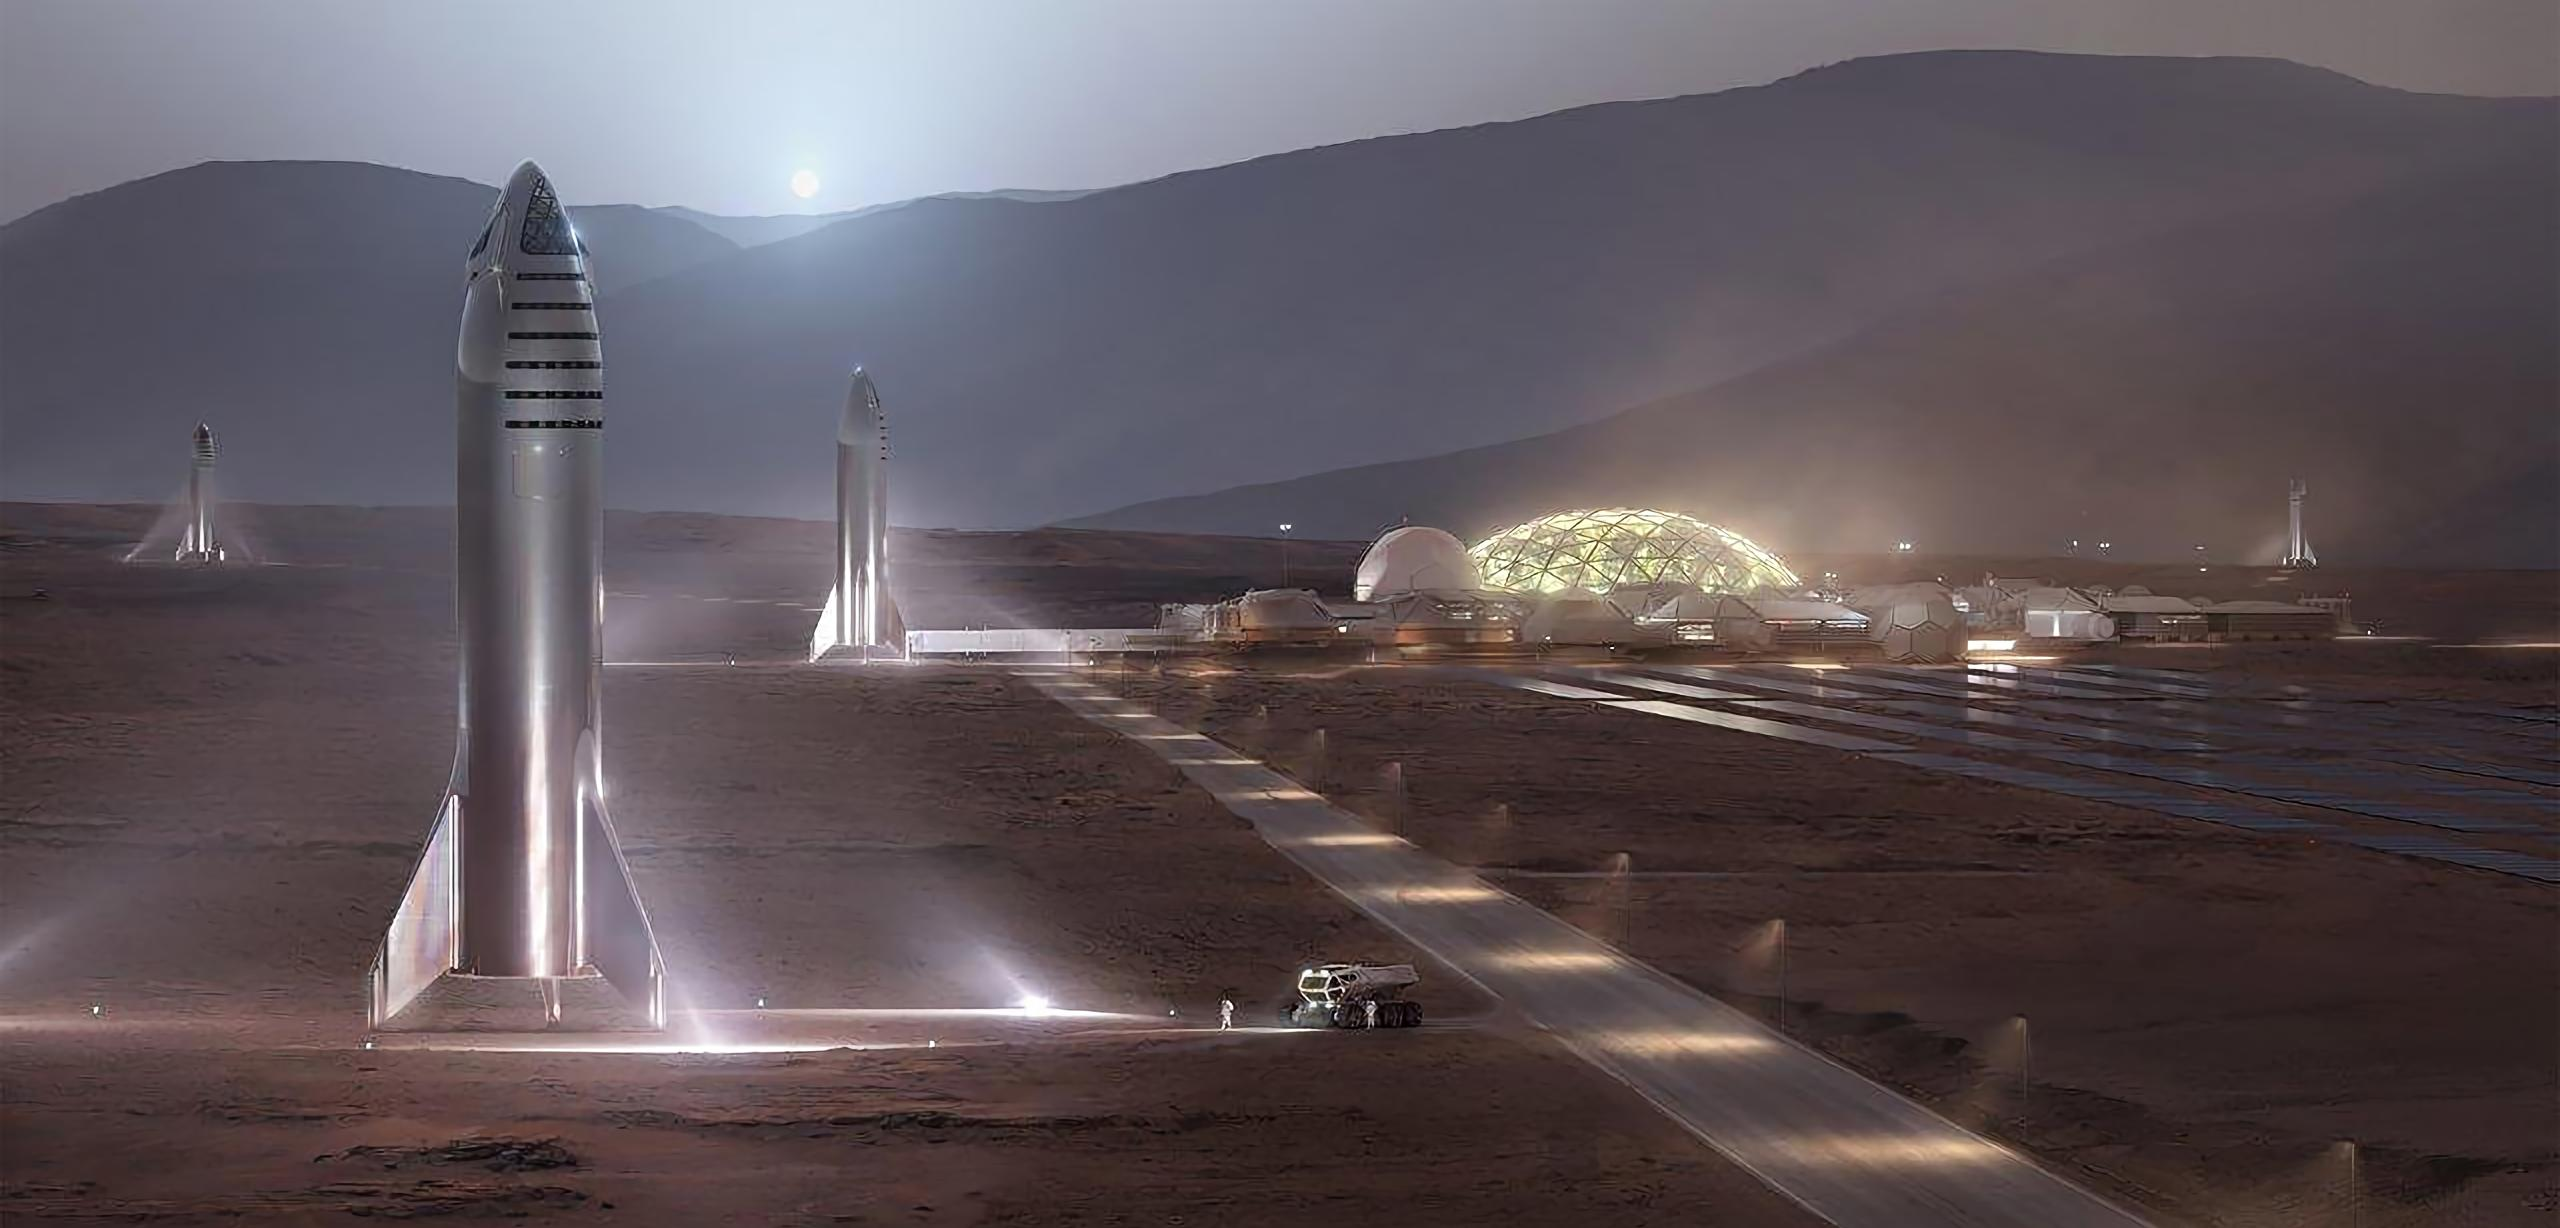 https://www.teslarati.com/wp-content/uploads/2019/07/steel-Starship-Mars-render-SpaceX-2X-1-crop.jpg